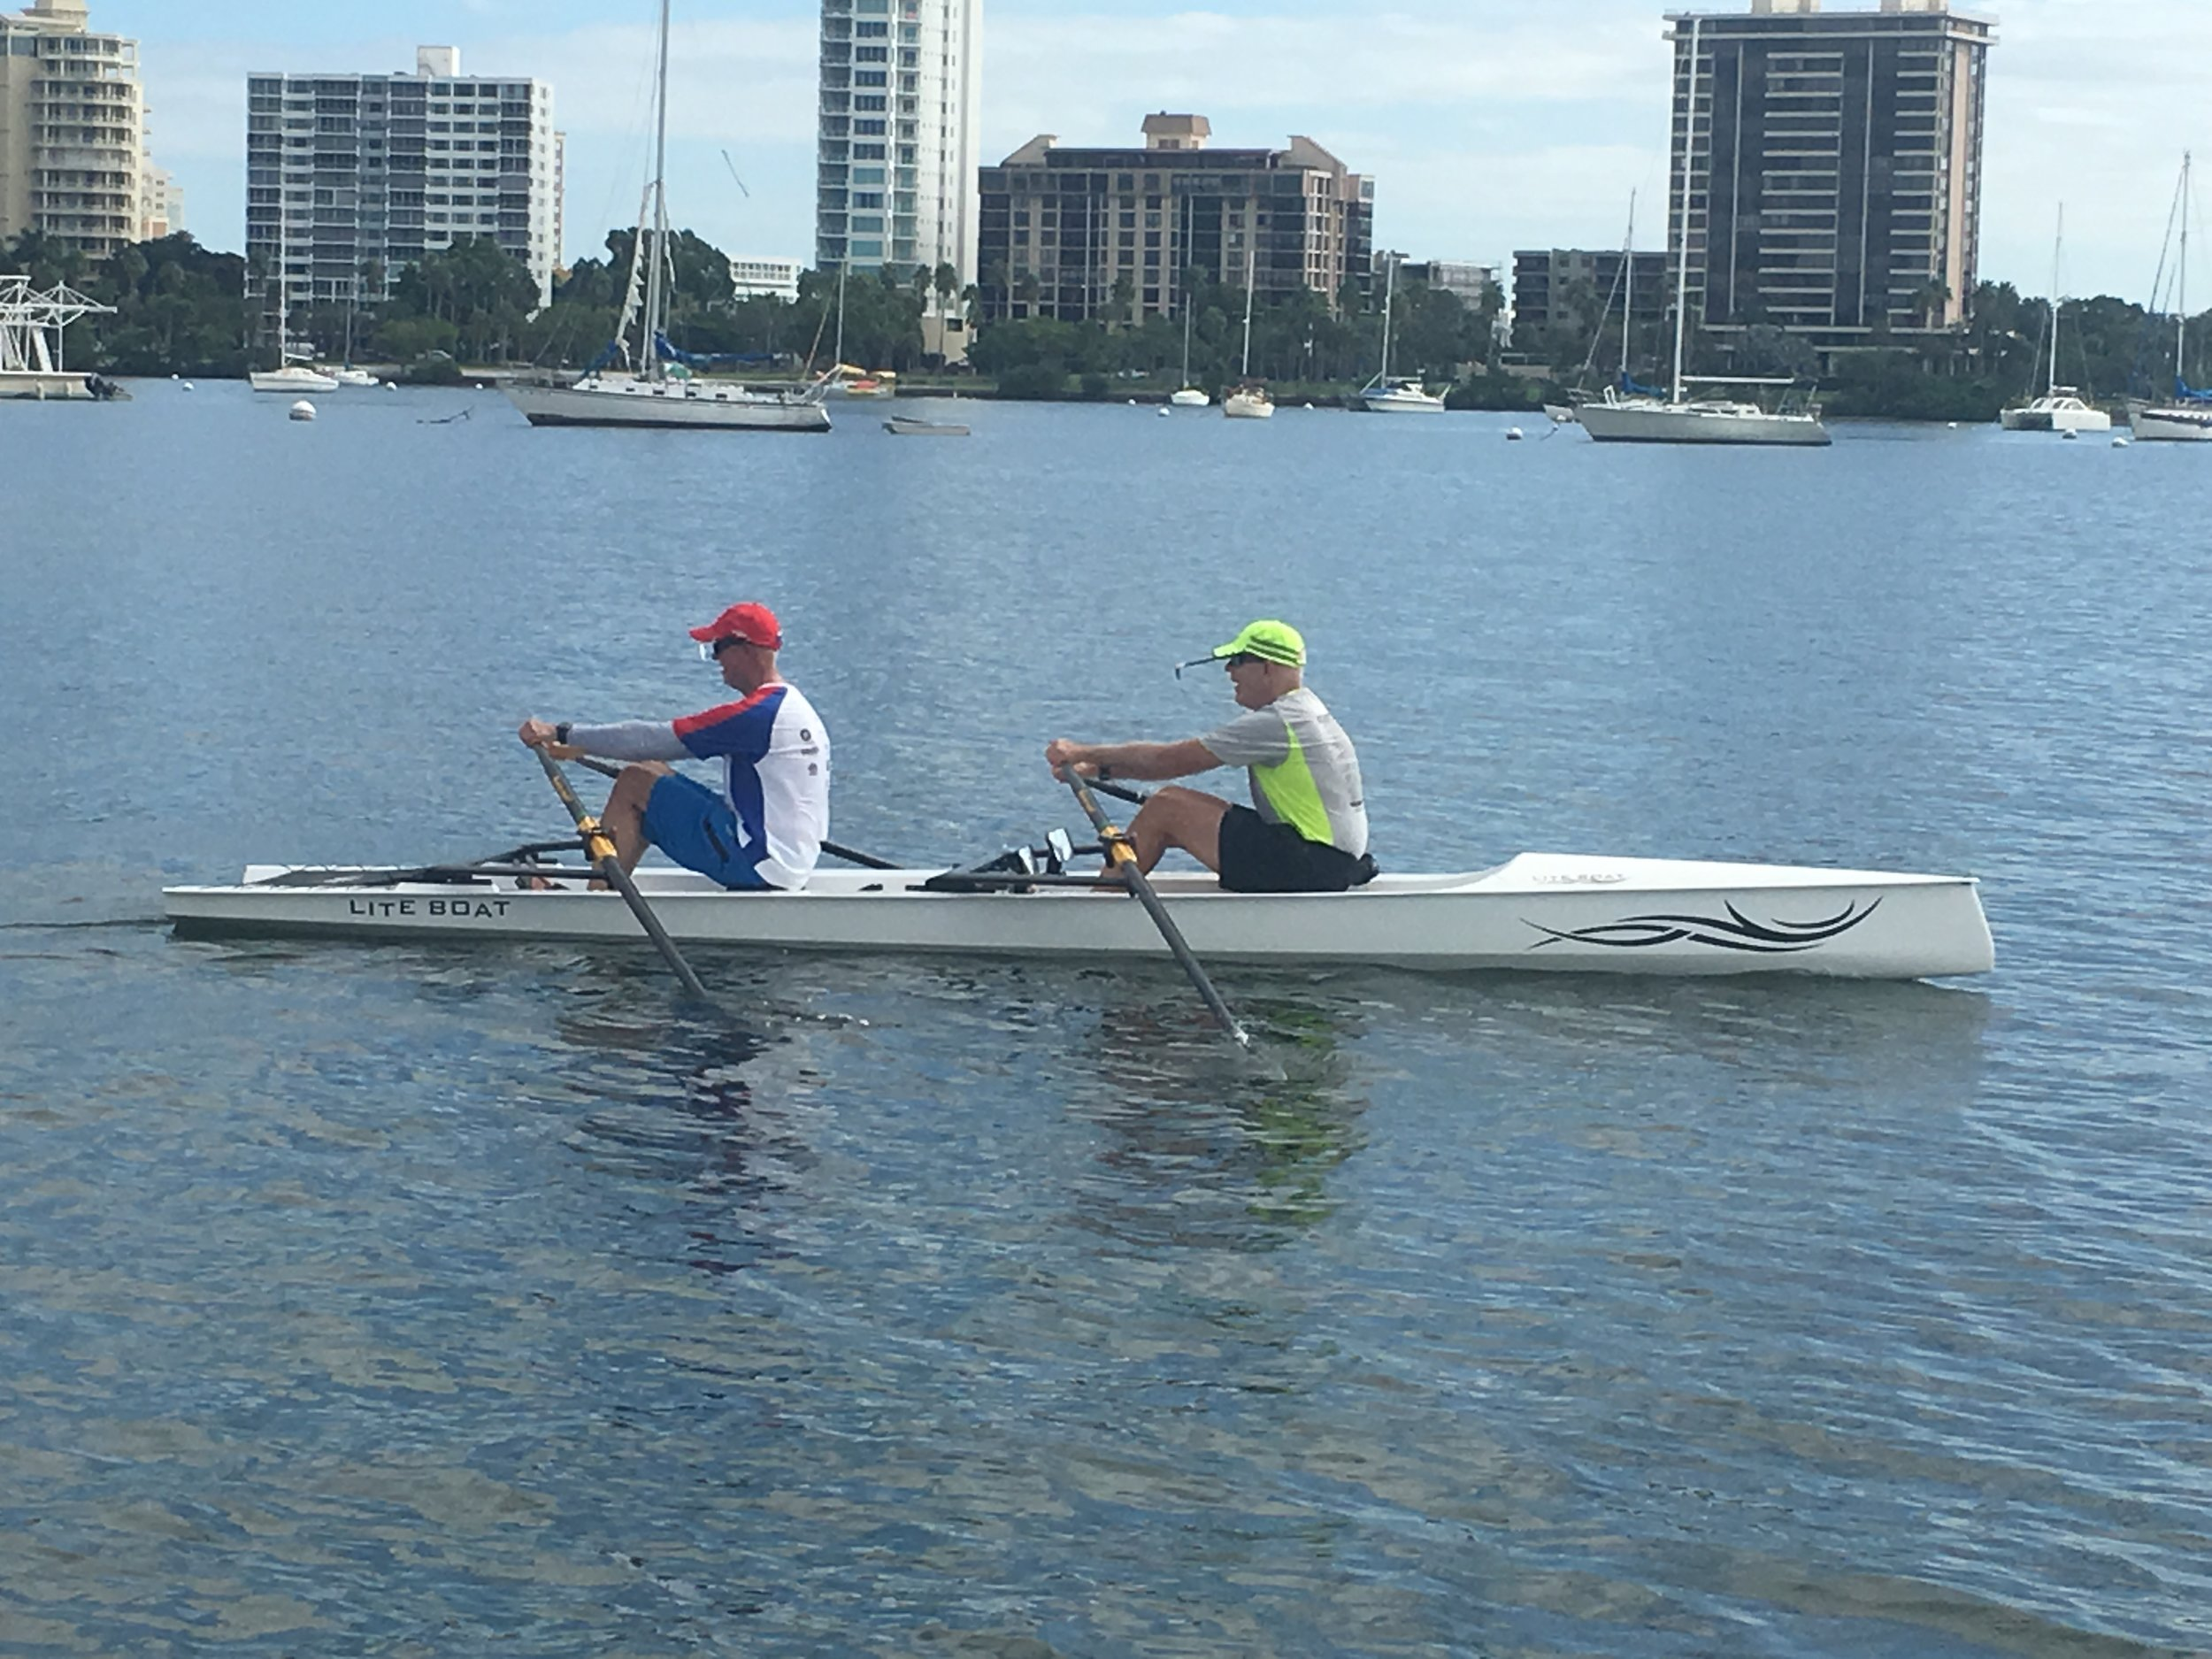 Demo Rows - Members of Lake County Rowing Association getting ready to take off in our LiteSport 2X.